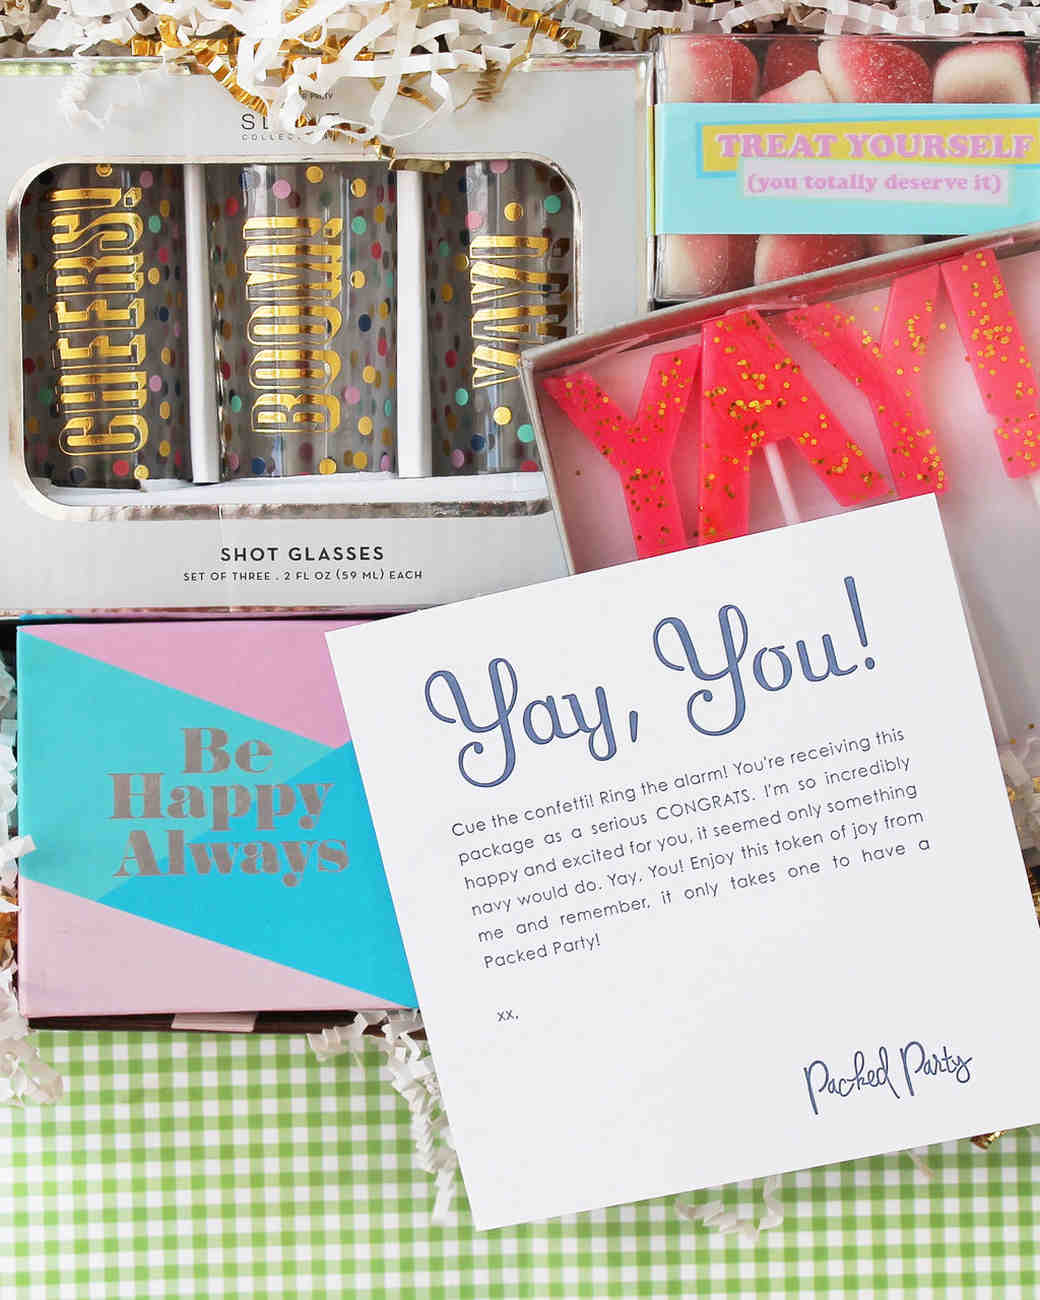 engagement-gifts-packed-party-gift-box-0516.jpg